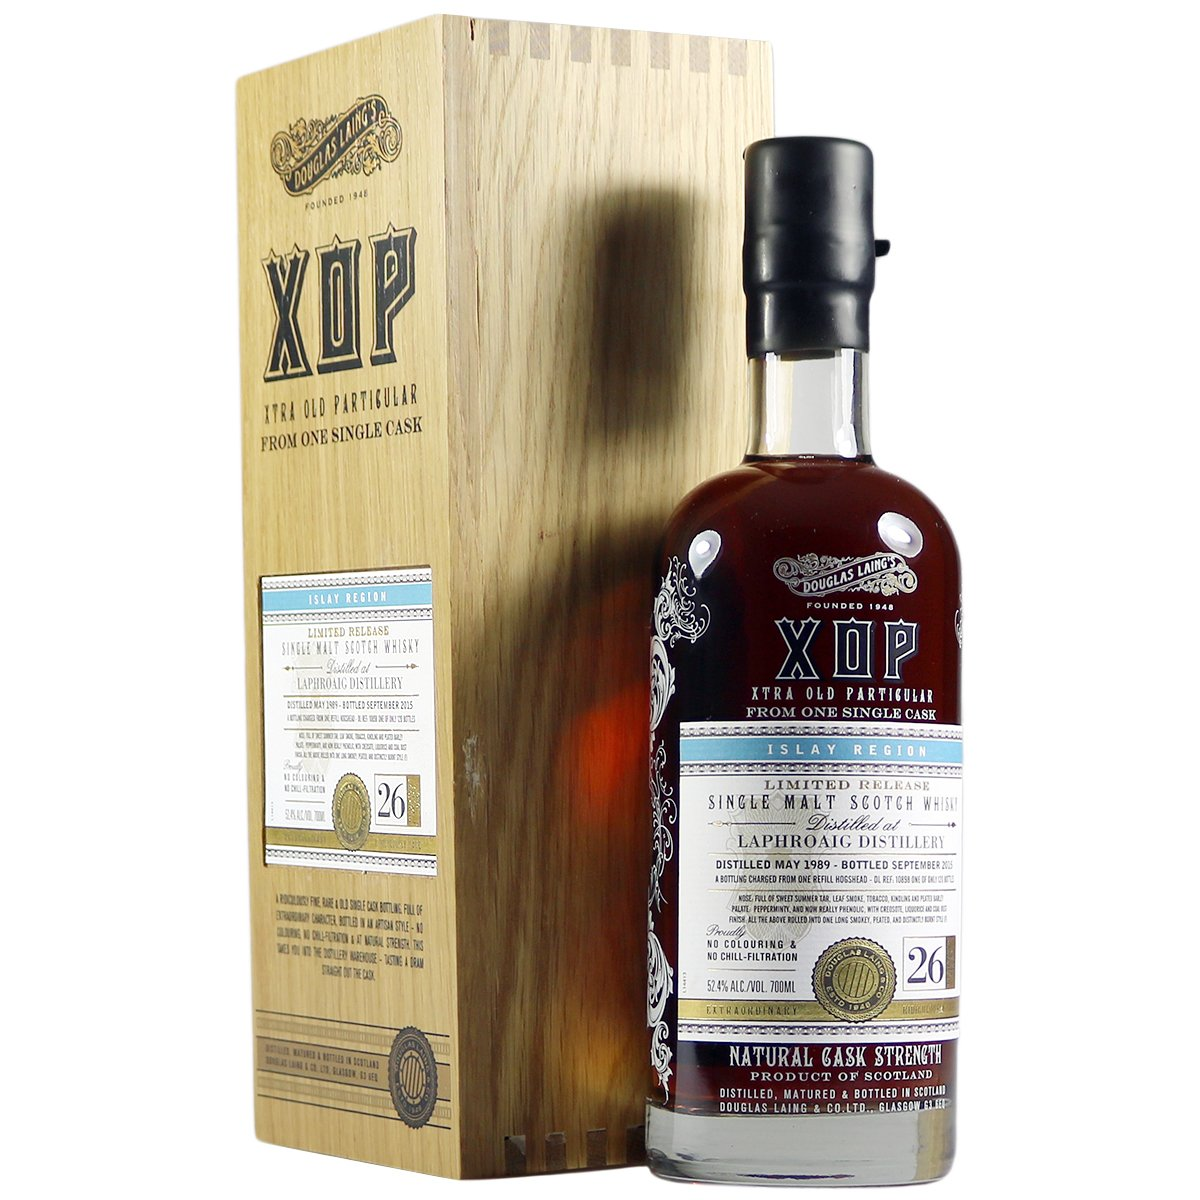 TheWhiskyVault on Twitter: